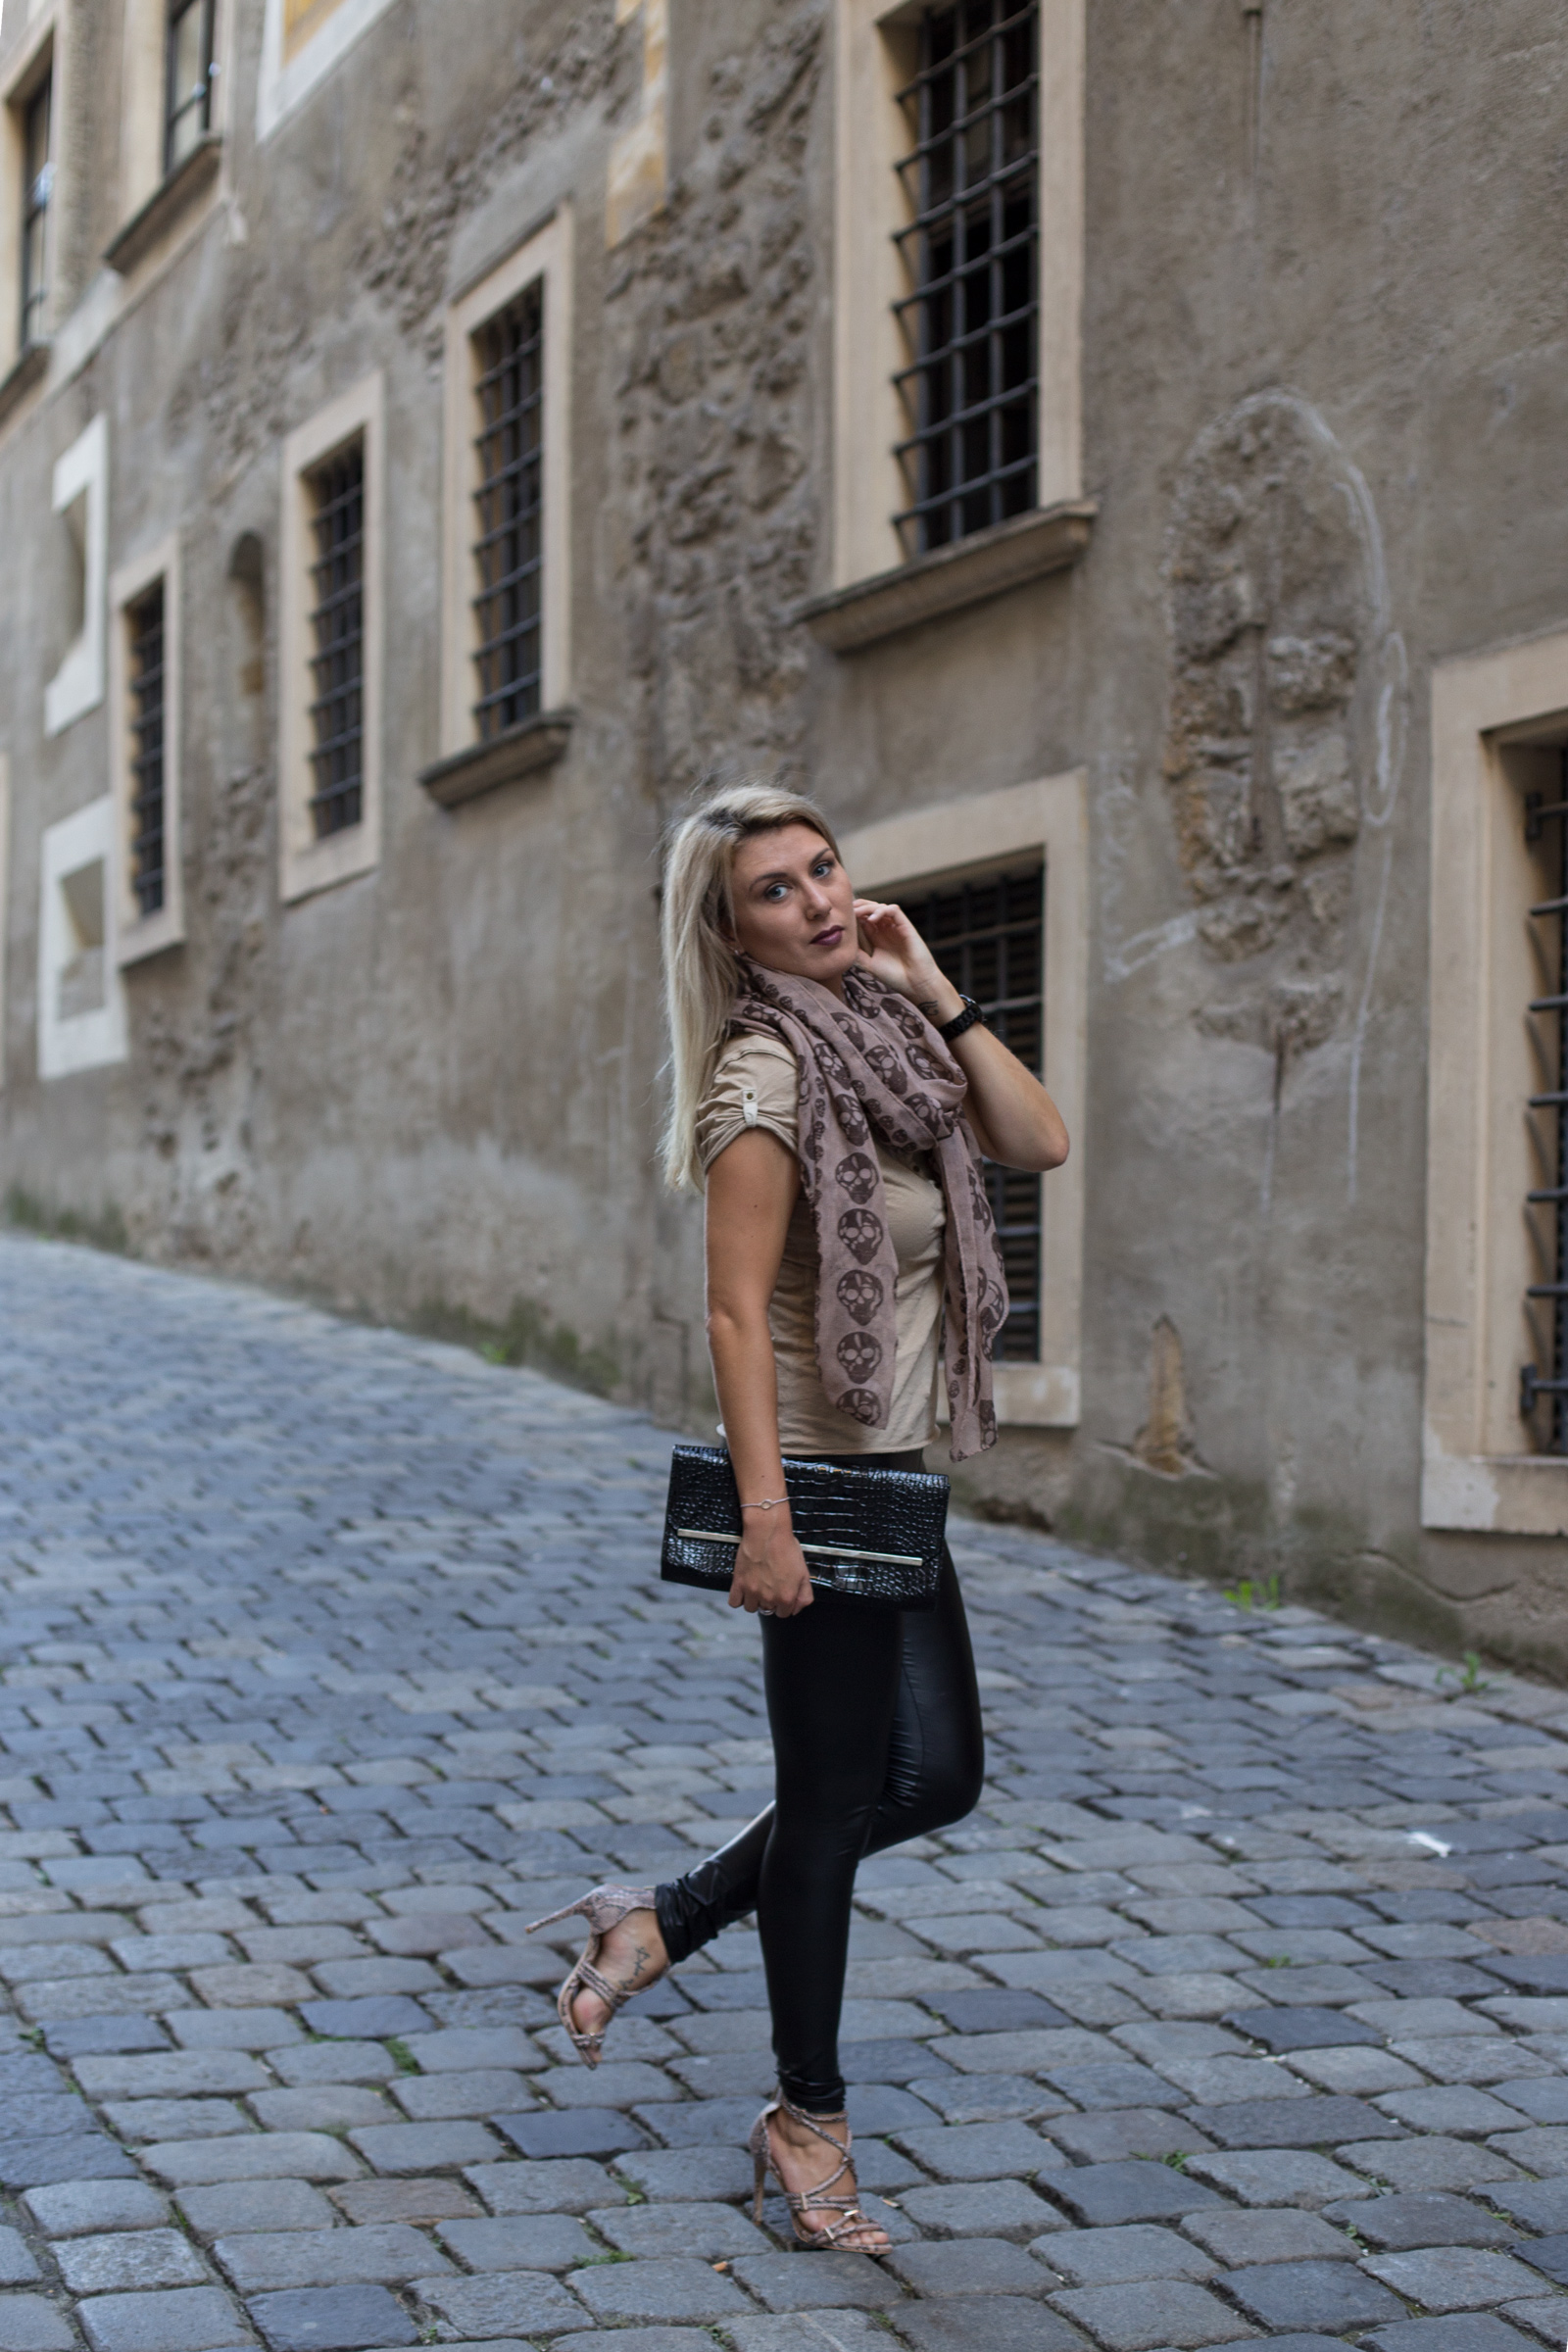 Foto_by_Nadja_Nemetz_Wien_Outfit_Fashion_Mode_Modeblogger_Blogger_3